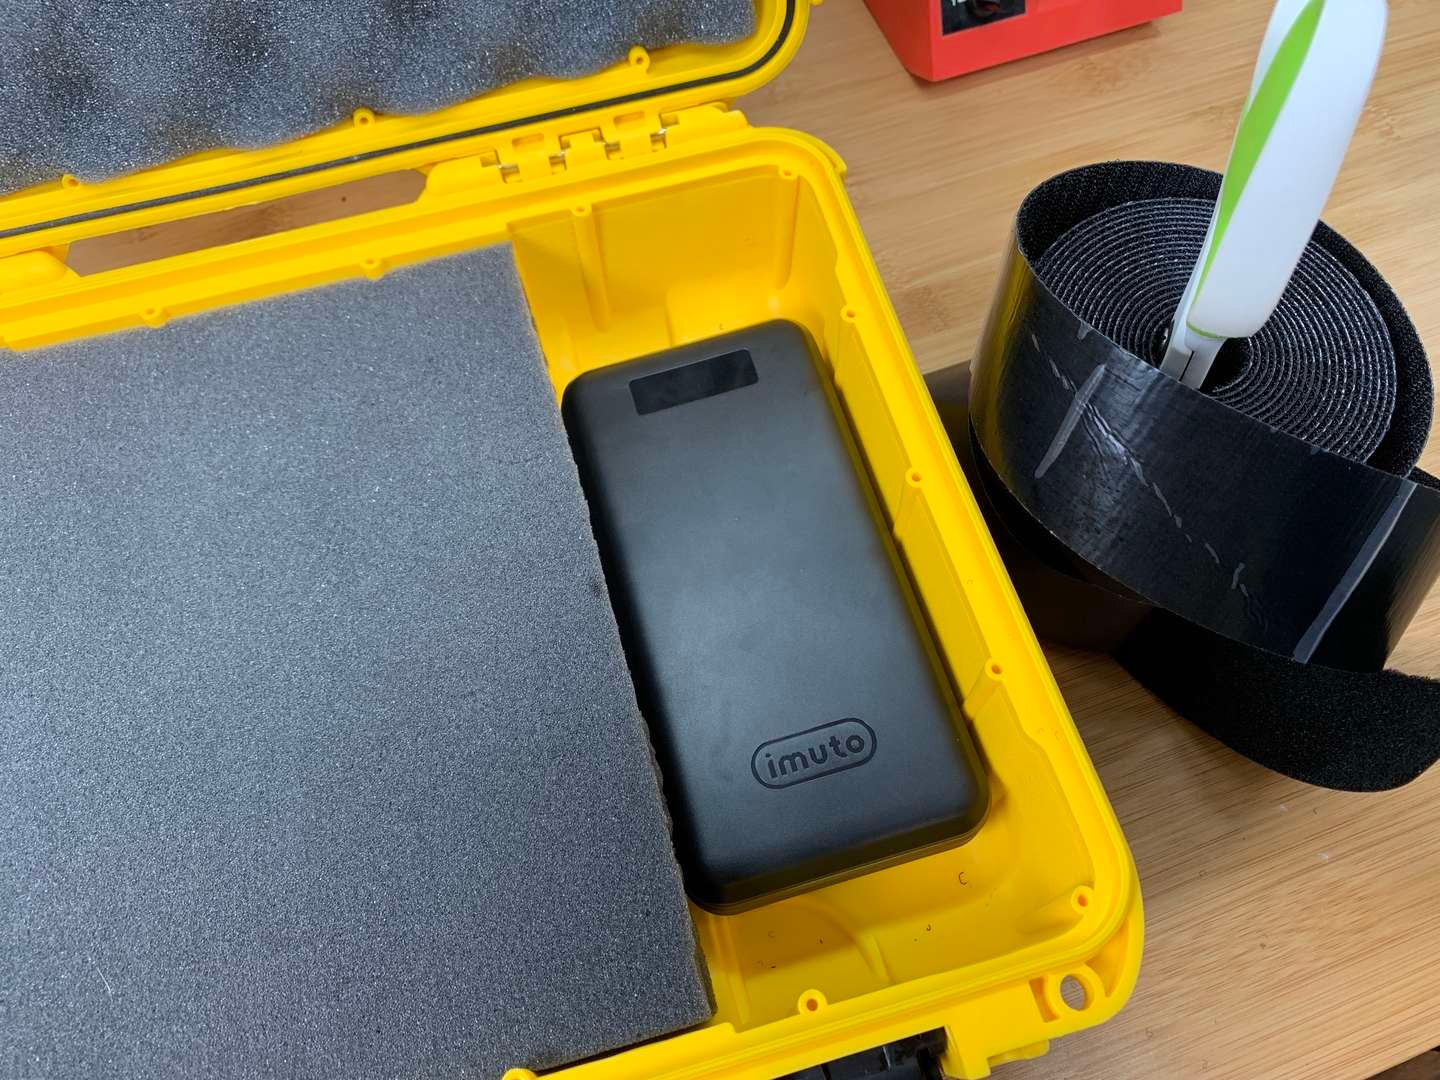 AdventurePi battery pack